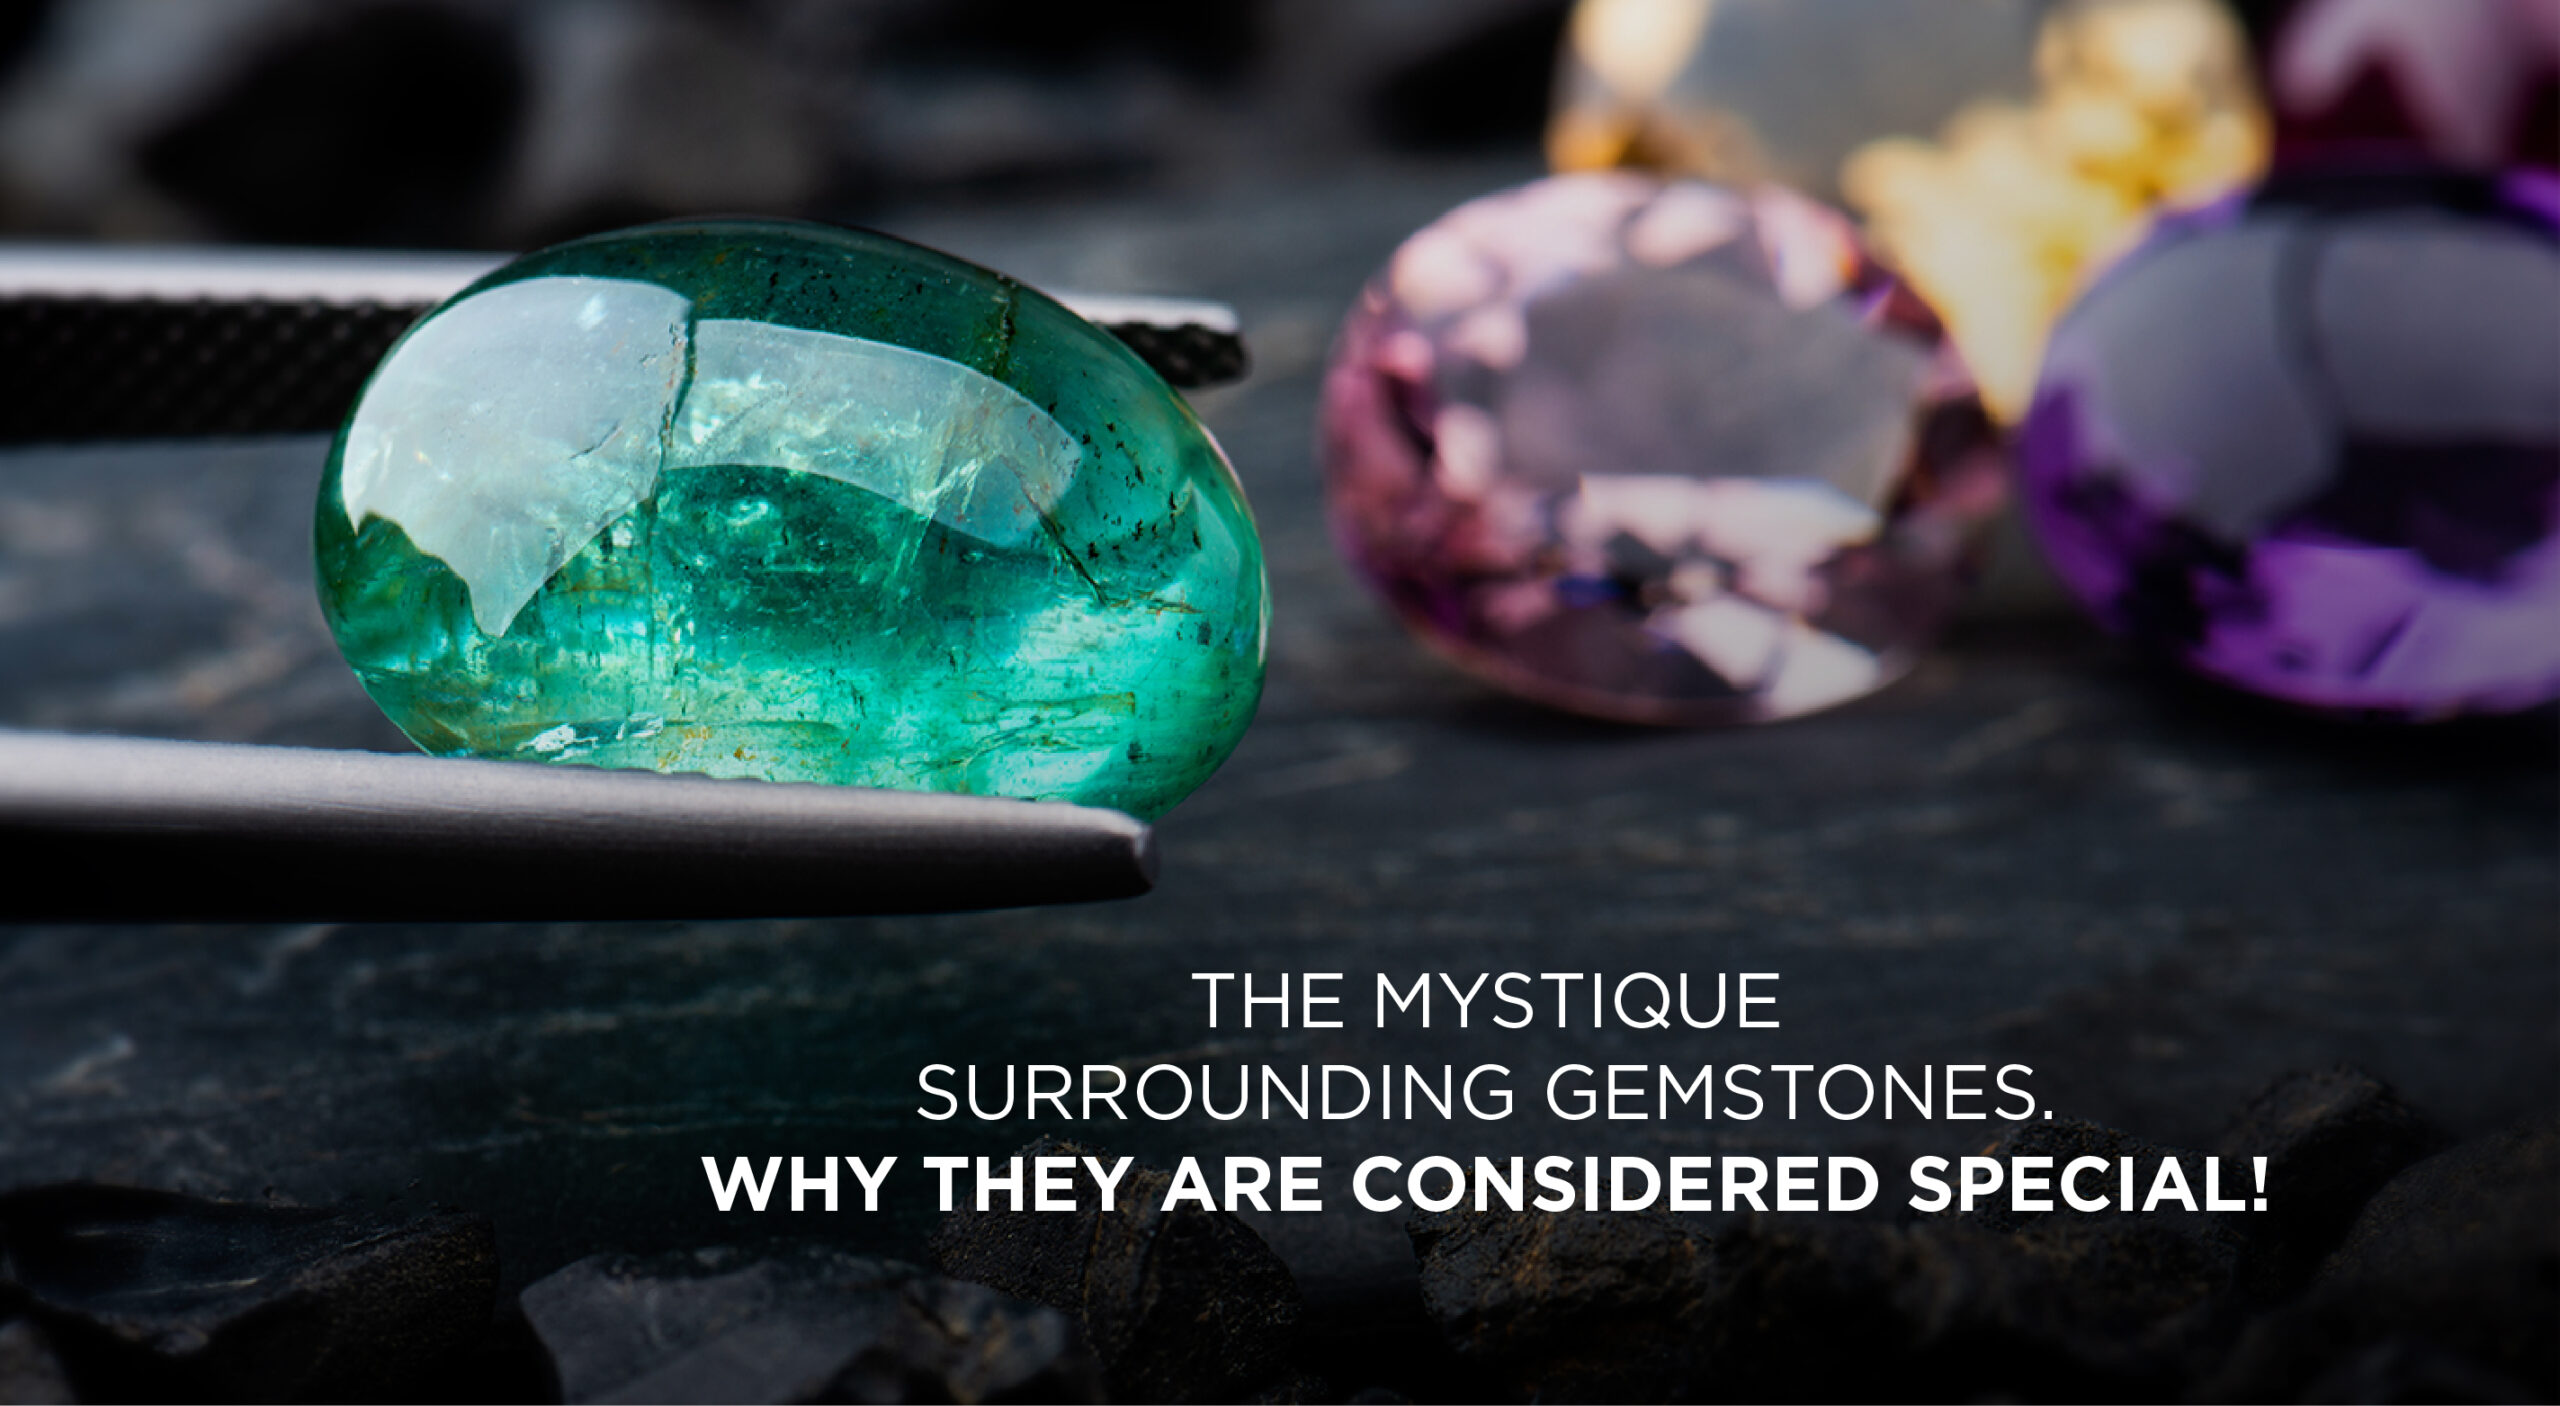 The mystique surrounding gemstones – why they are considered special!